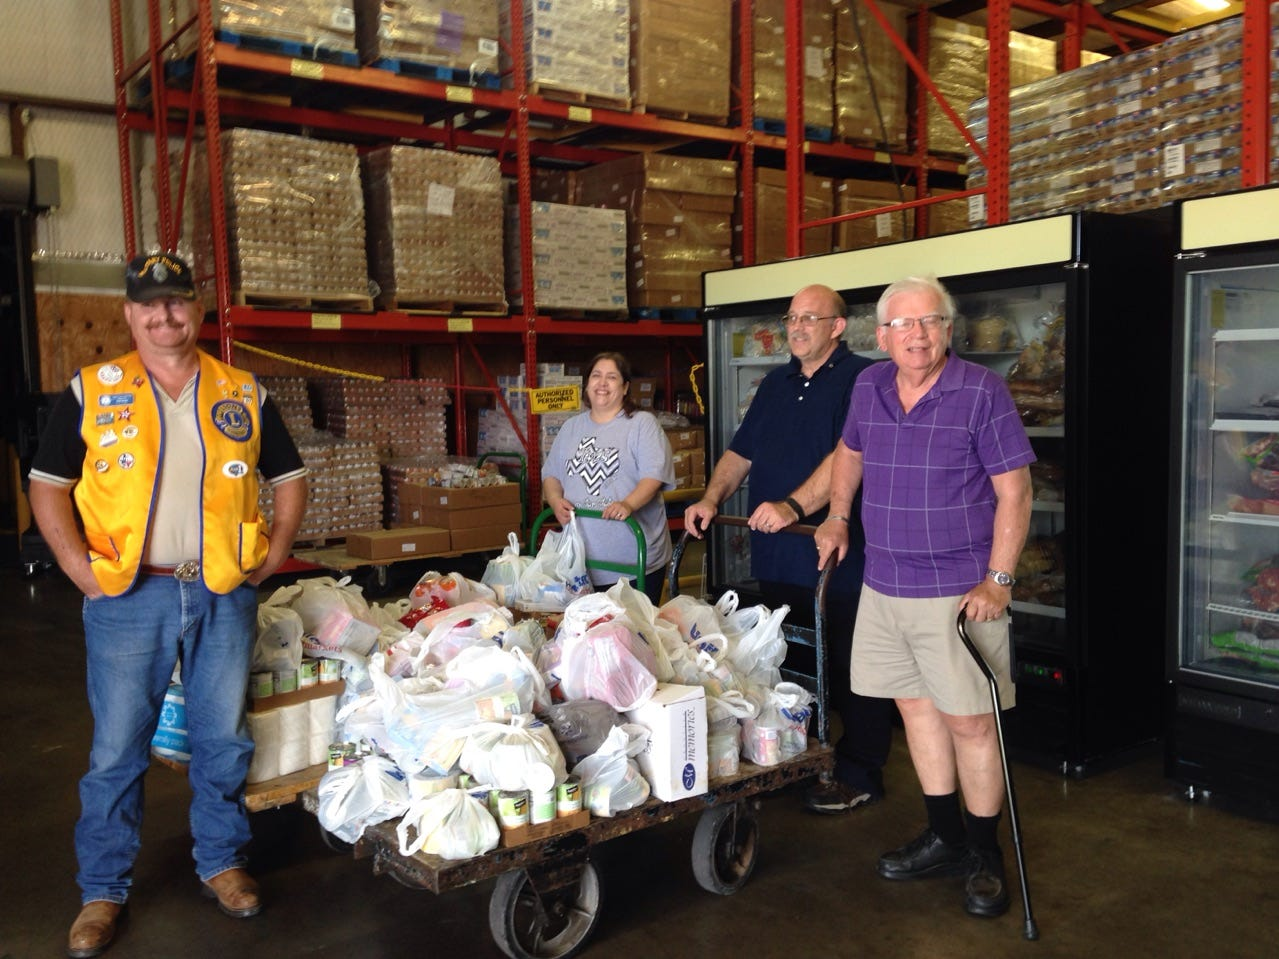 Members of the Abilene Cactus Lions Club present the proceeds of the second annual fundraiser to the Food Bank of West Central Texas – $622 and more than 700 pounds of food.